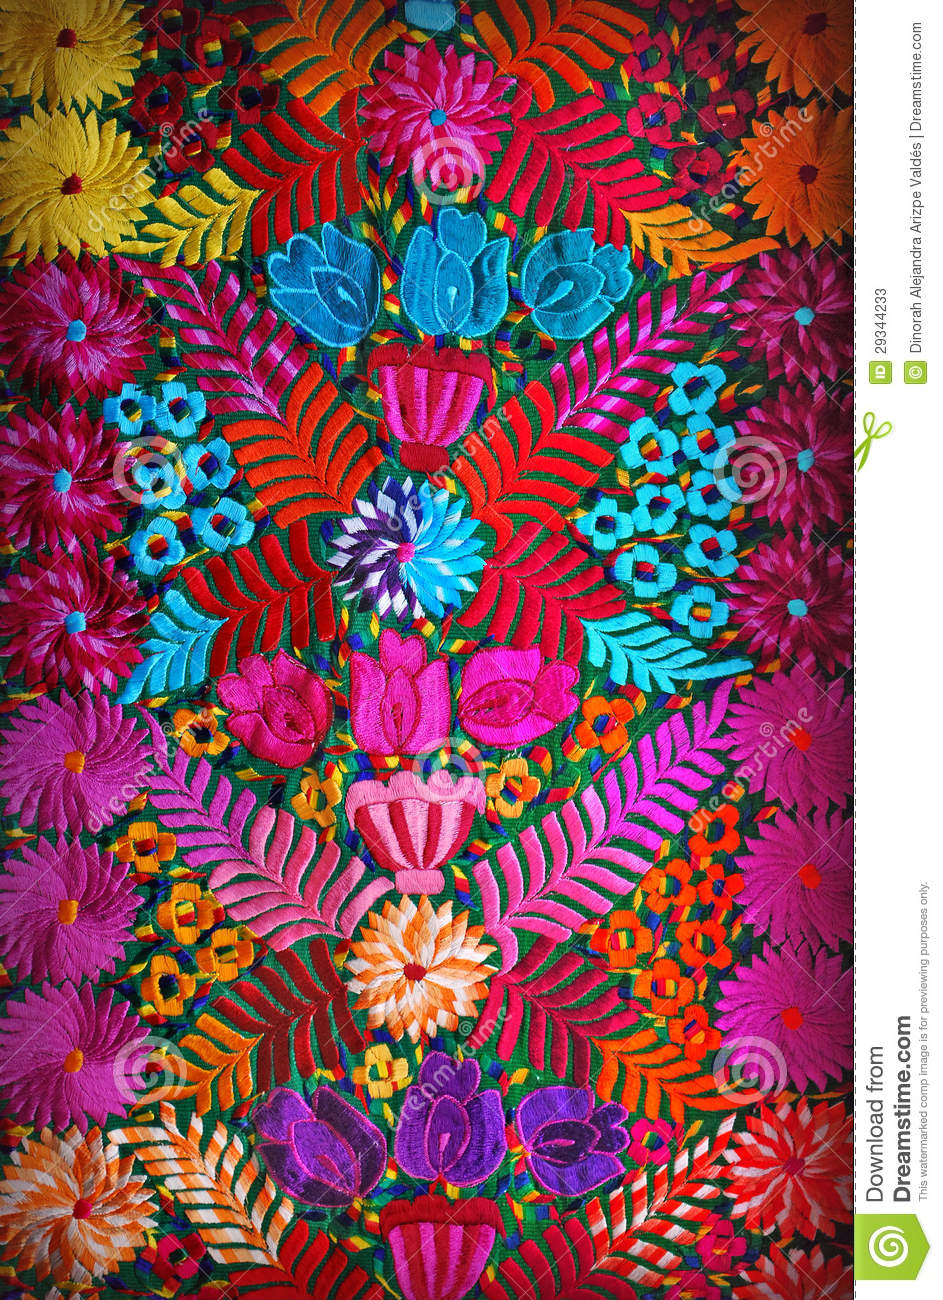 Broderie florale mexicaine